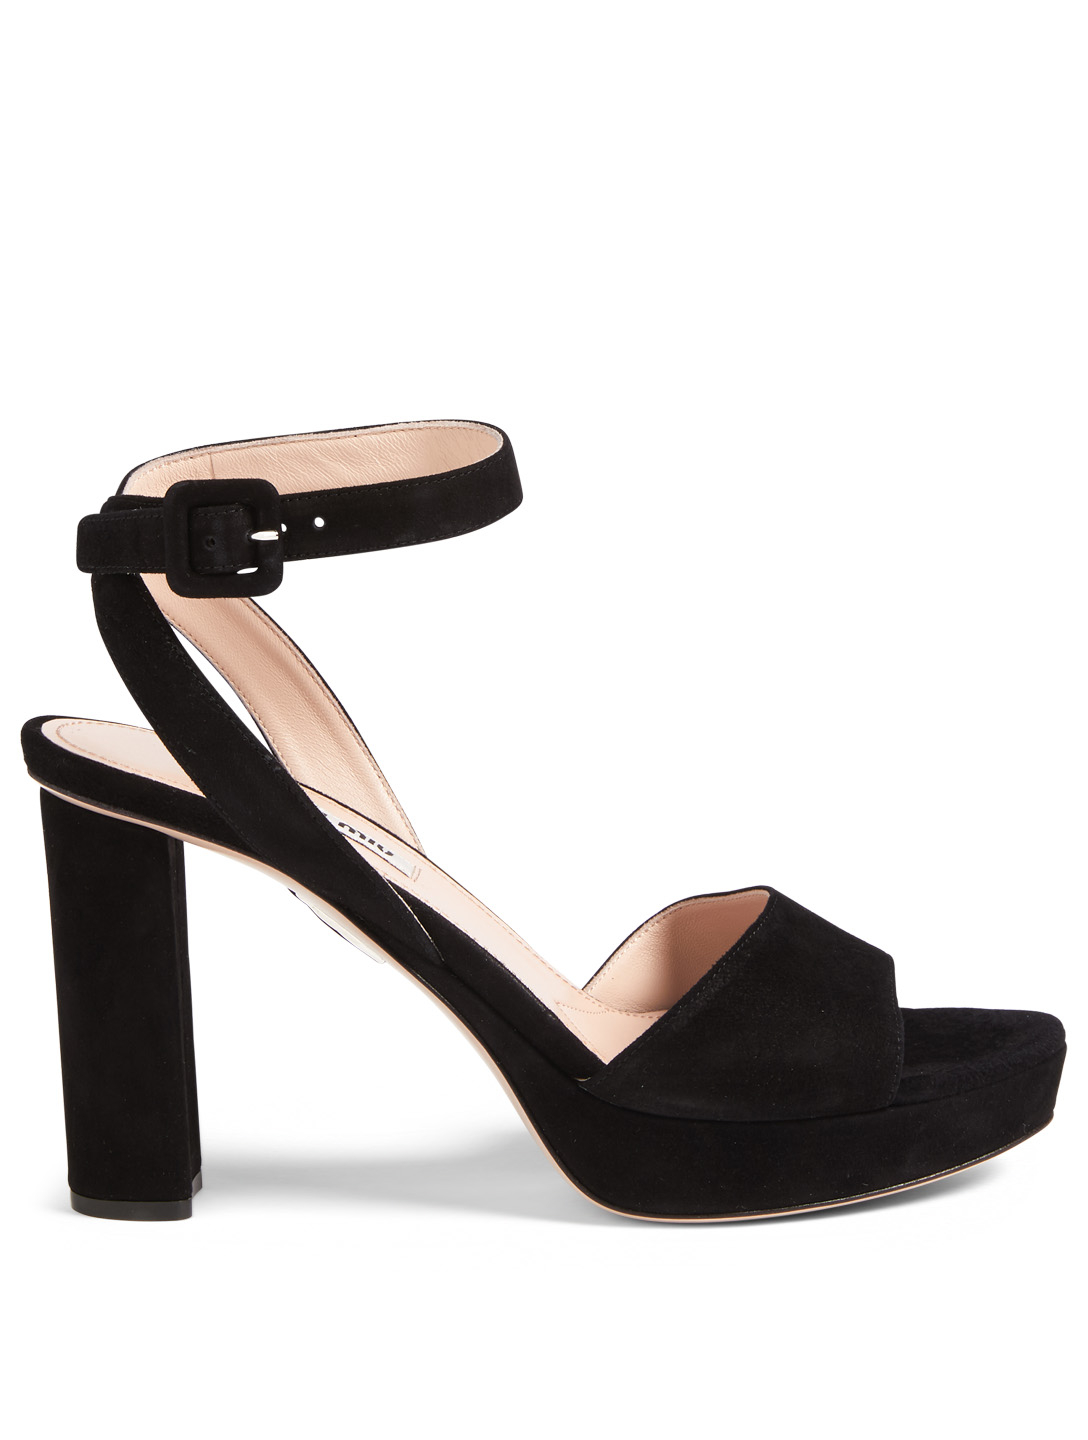 MIU MIU Suede Platform Sandals Womens Black